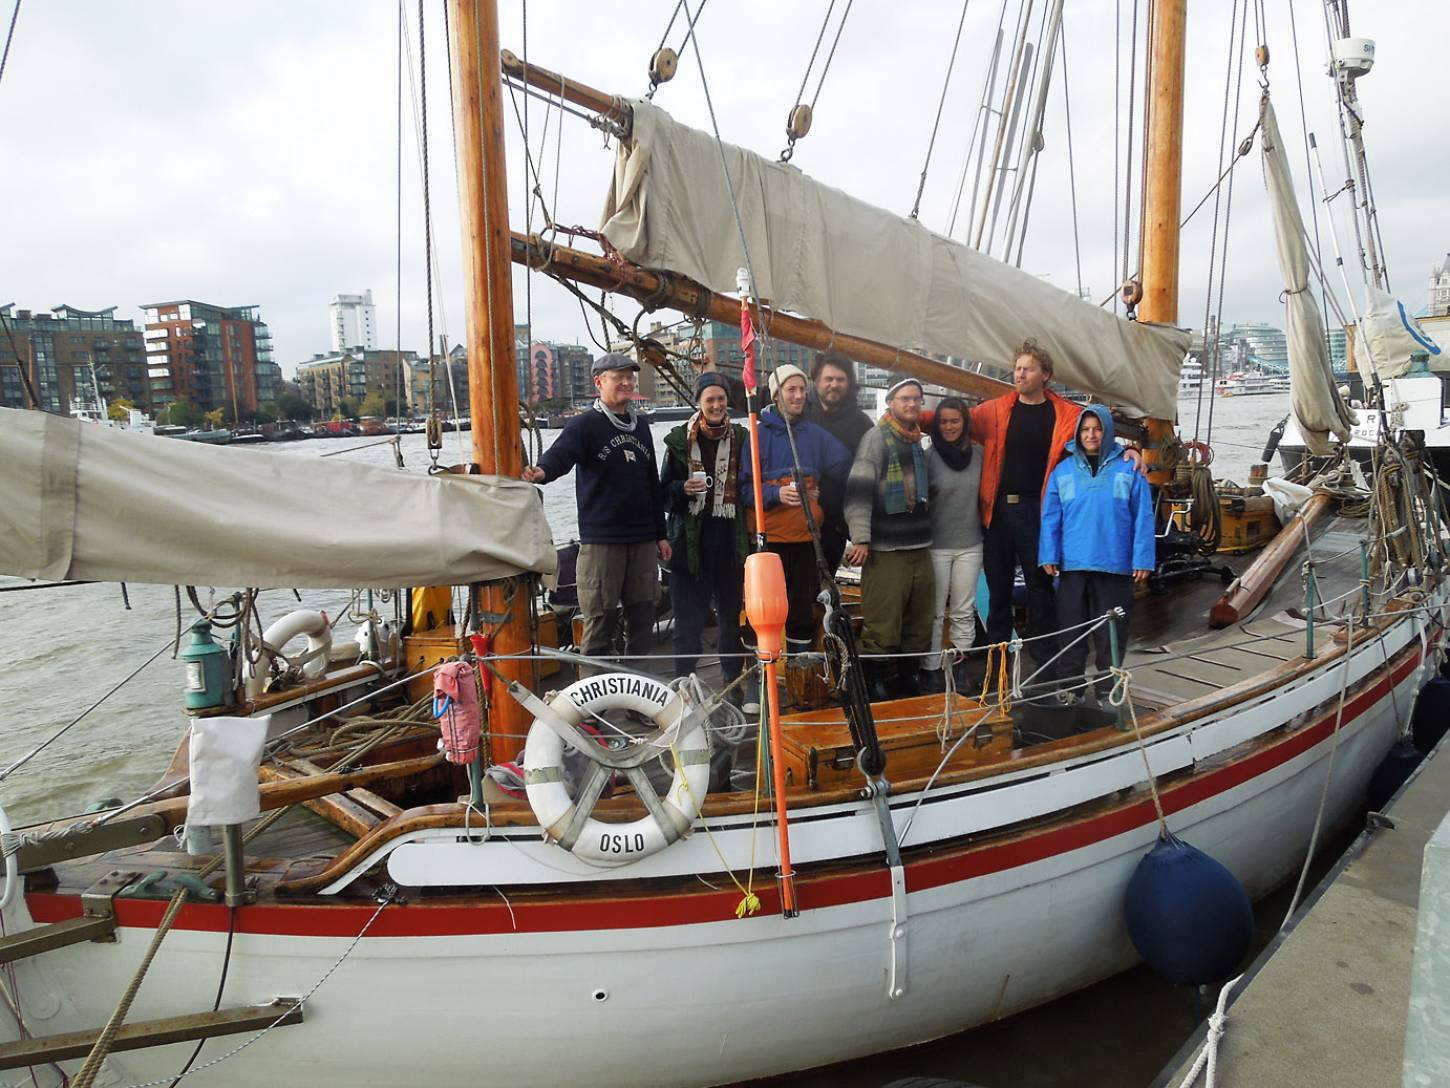 farewell to the <a href='http://https://fr.wikipedia.org/wiki/RS_10_Christiania' target='_blank'>RS10 Christiana</a> and her crew on next leg of their <a href='http://futurefarmers.com/seedjourney/' target='_blank'>seed journey</a> to Antwerp carrying back from BBA some <a href='http://www.wheat-gateway.org.uk/search.php?send=1&per=50&search=de%20flandre&simple=1' target='_blank'>Ble Blanc de Flandre</a> - 11:29am&nbsp;26<sup>th</sup>&nbsp;Oct.&nbsp;'16